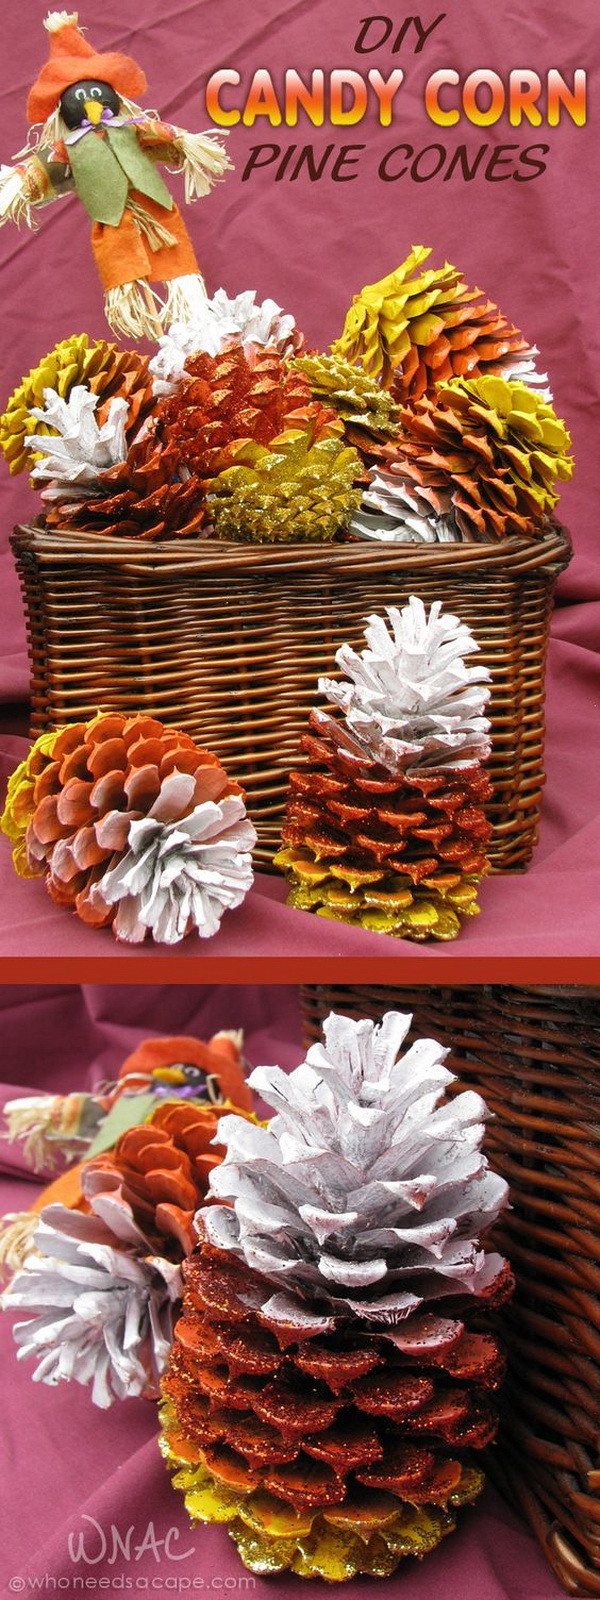 Festive diy pine cone crafts for your holiday decoration for Holiday craft ideas with pine cones